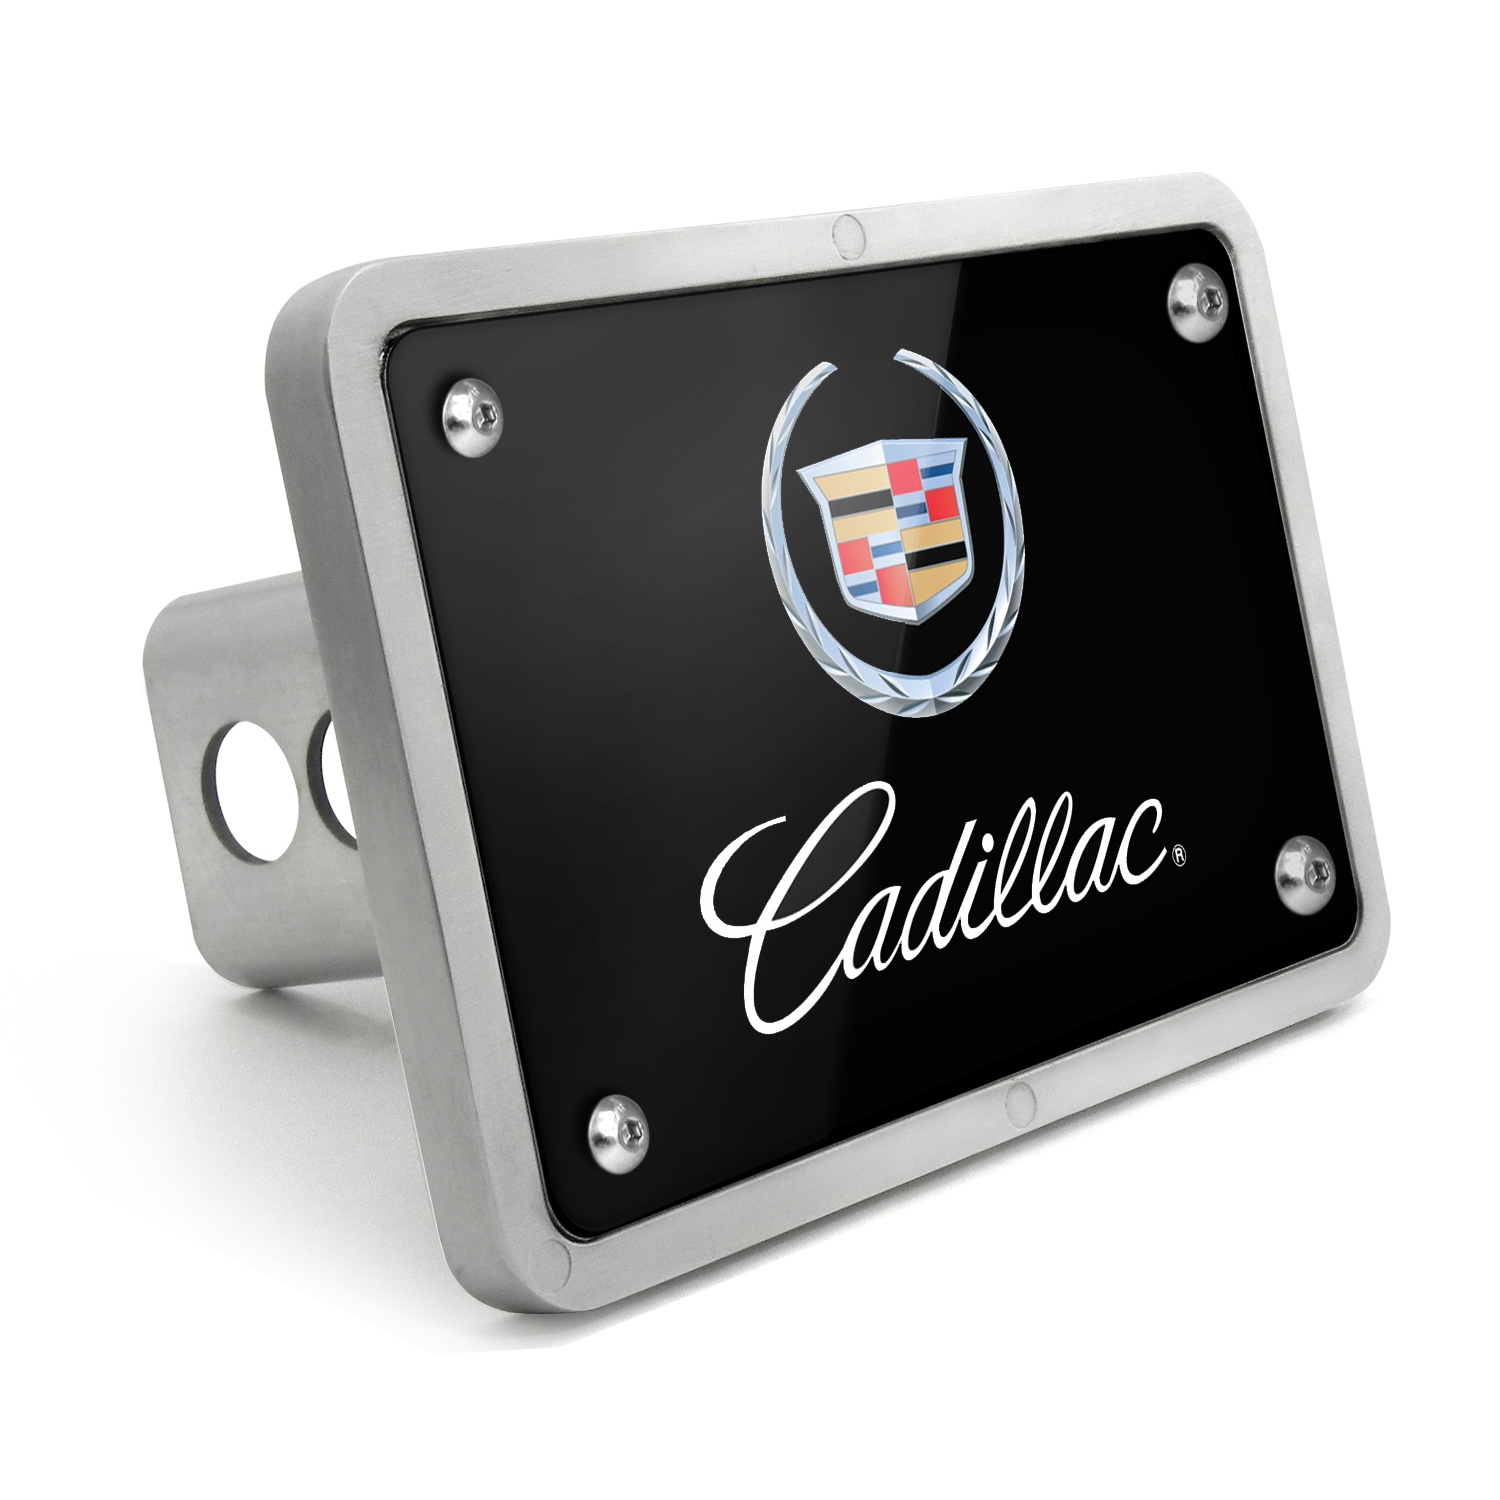 Cadillac Logo 2002 UV Graphic Black Billet Aluminum 2 inch Tow Hitch Cover